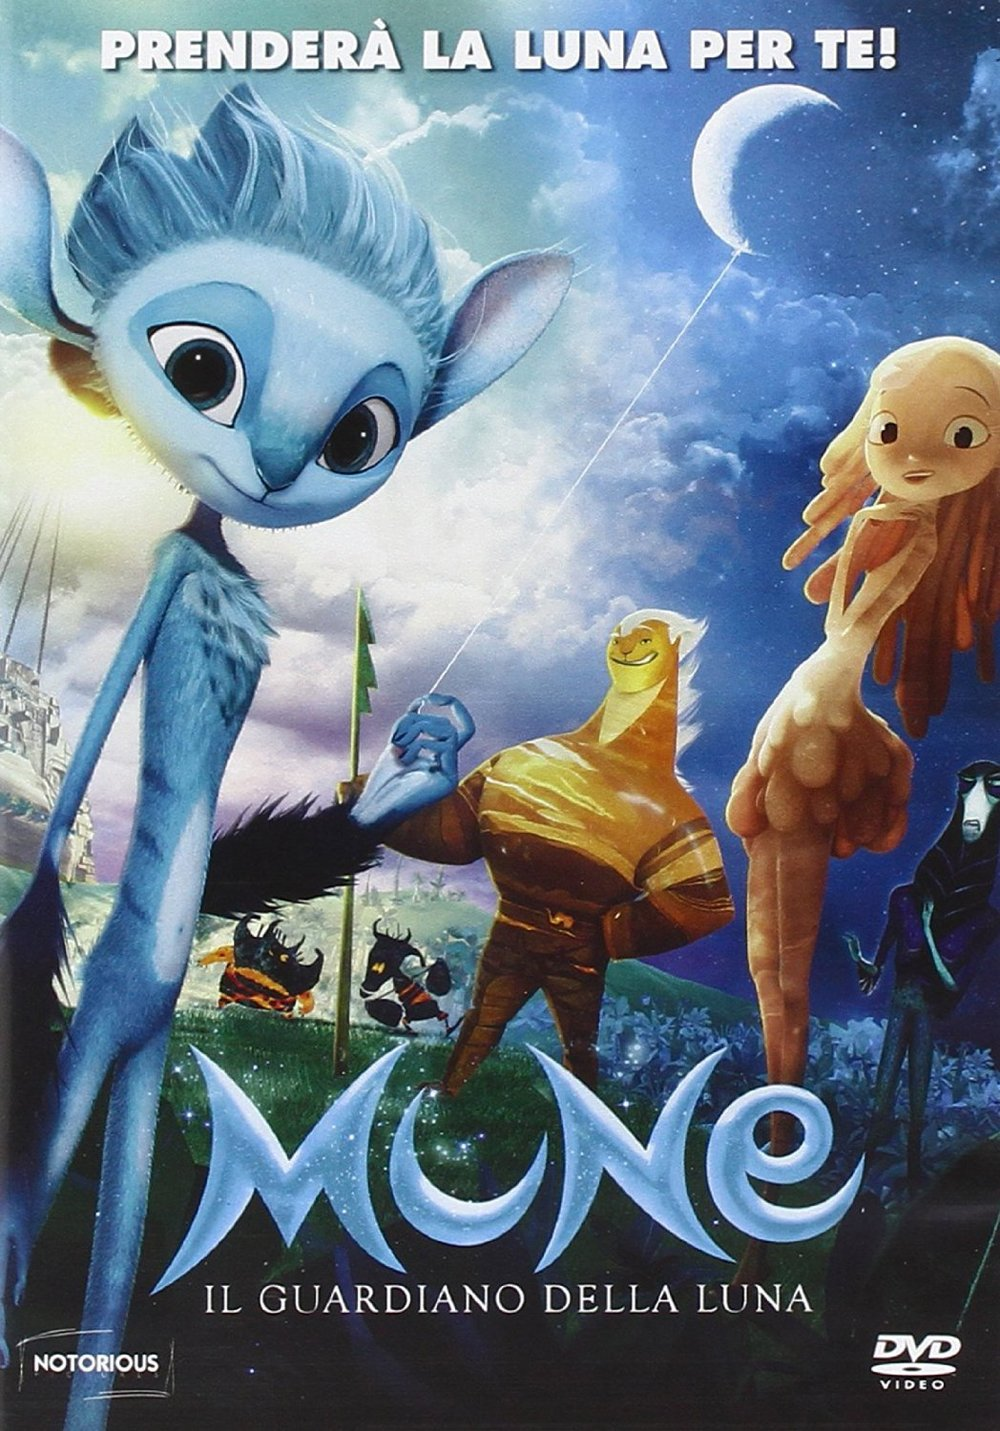 Mune Italia Dvd Amazon Es Non Disponibile Benoit Philippon Alexandre Heboyan Non Disponibile Cine Y Series Tv